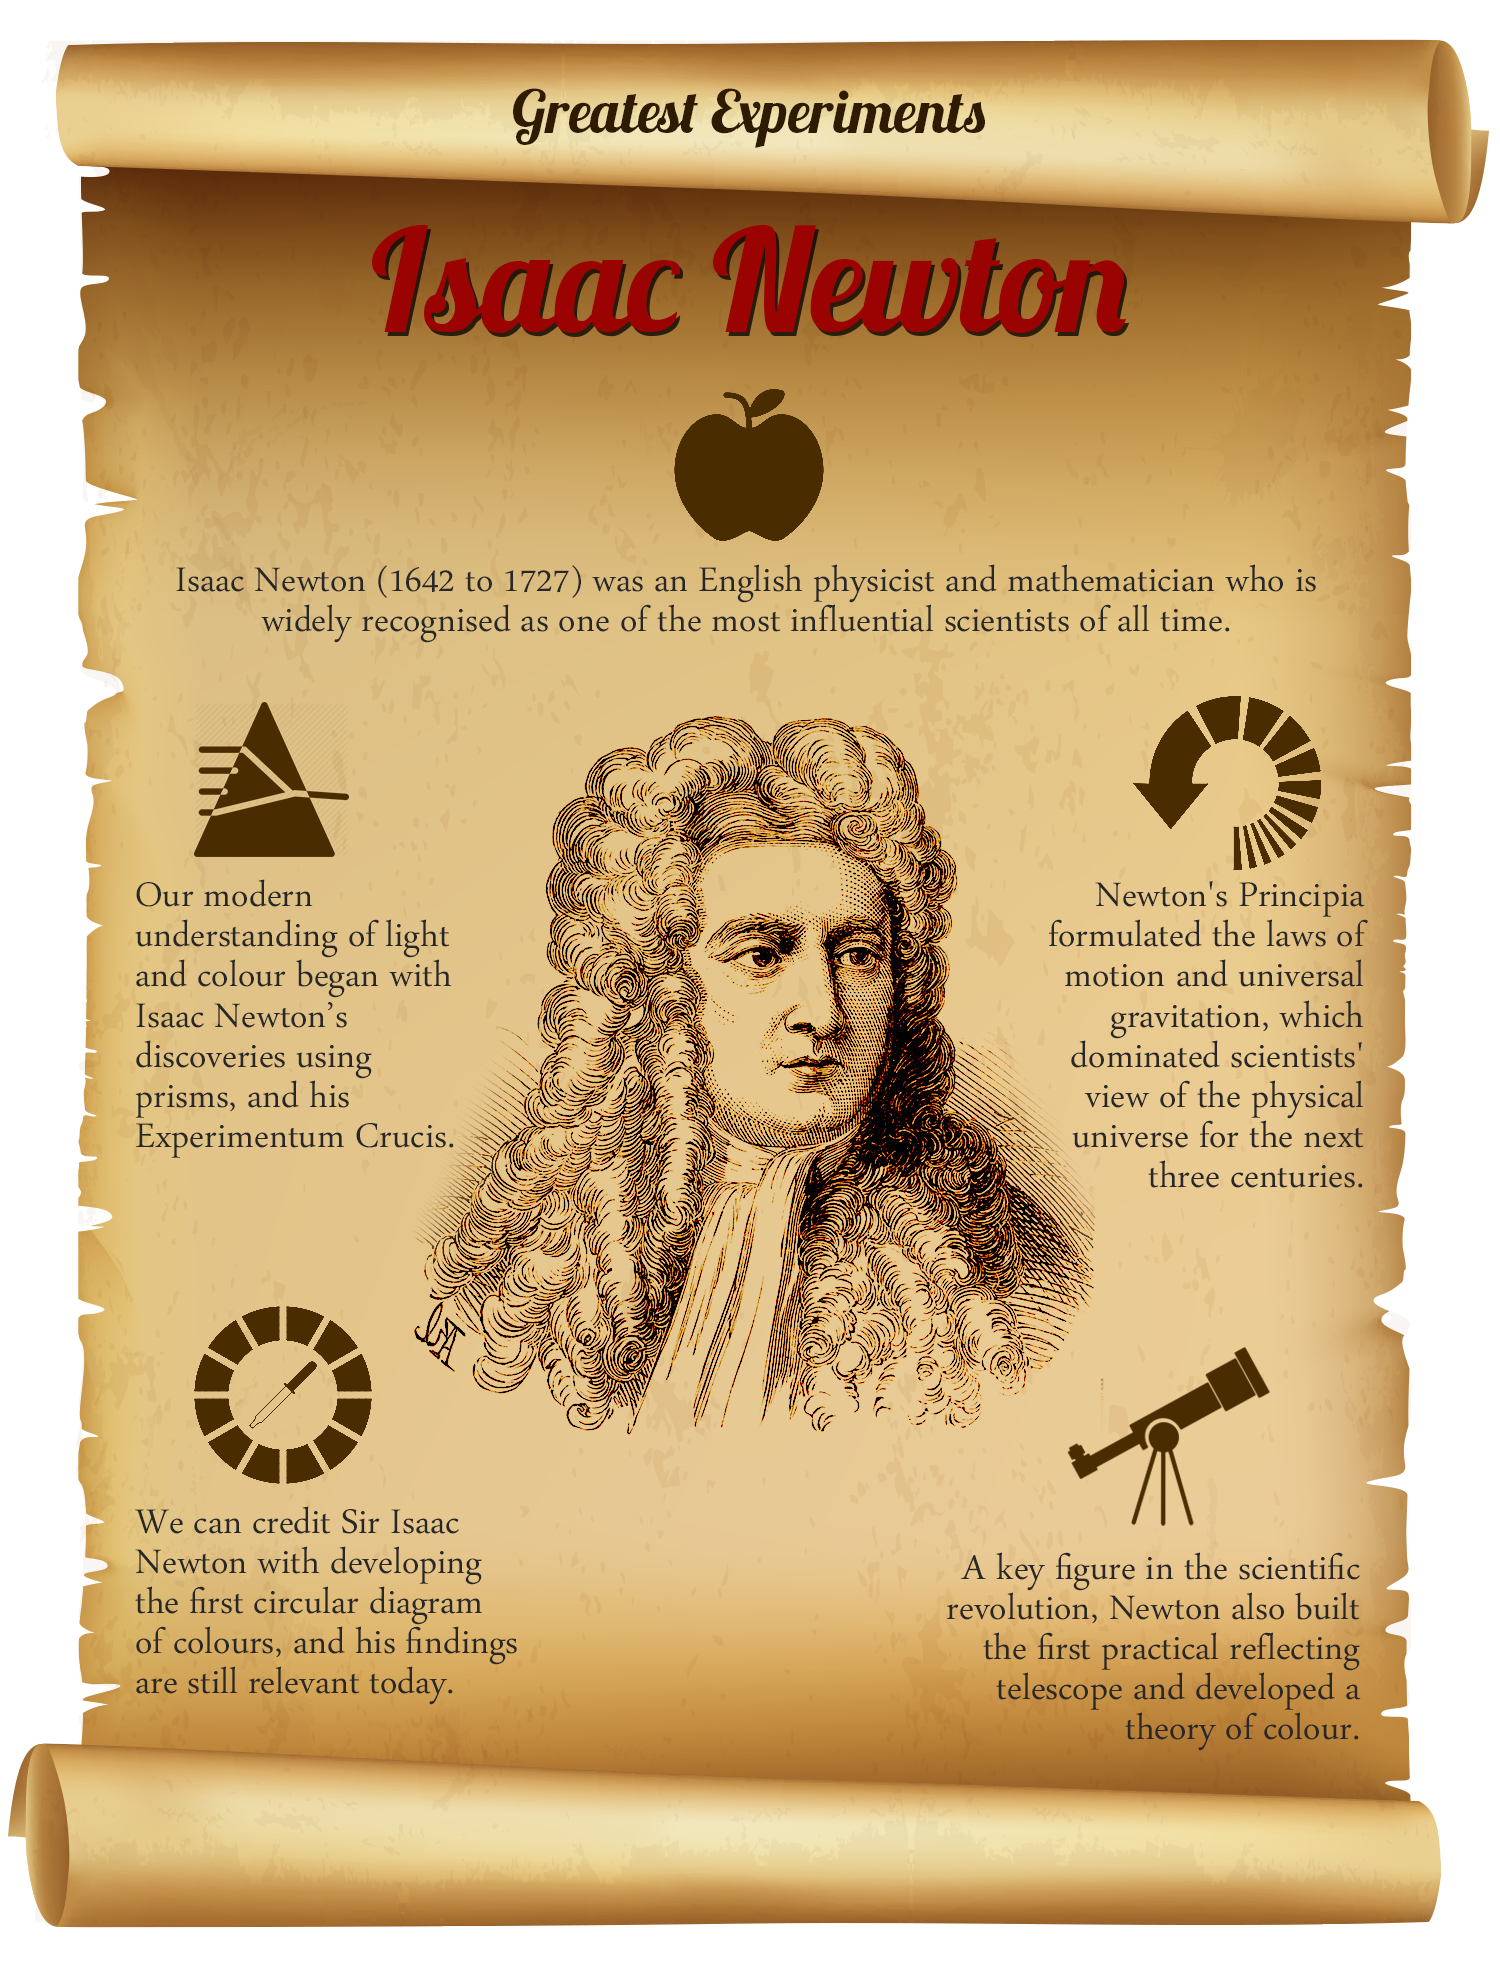 Sir Isaac Newton Is Widely Recognised As One Of The Most